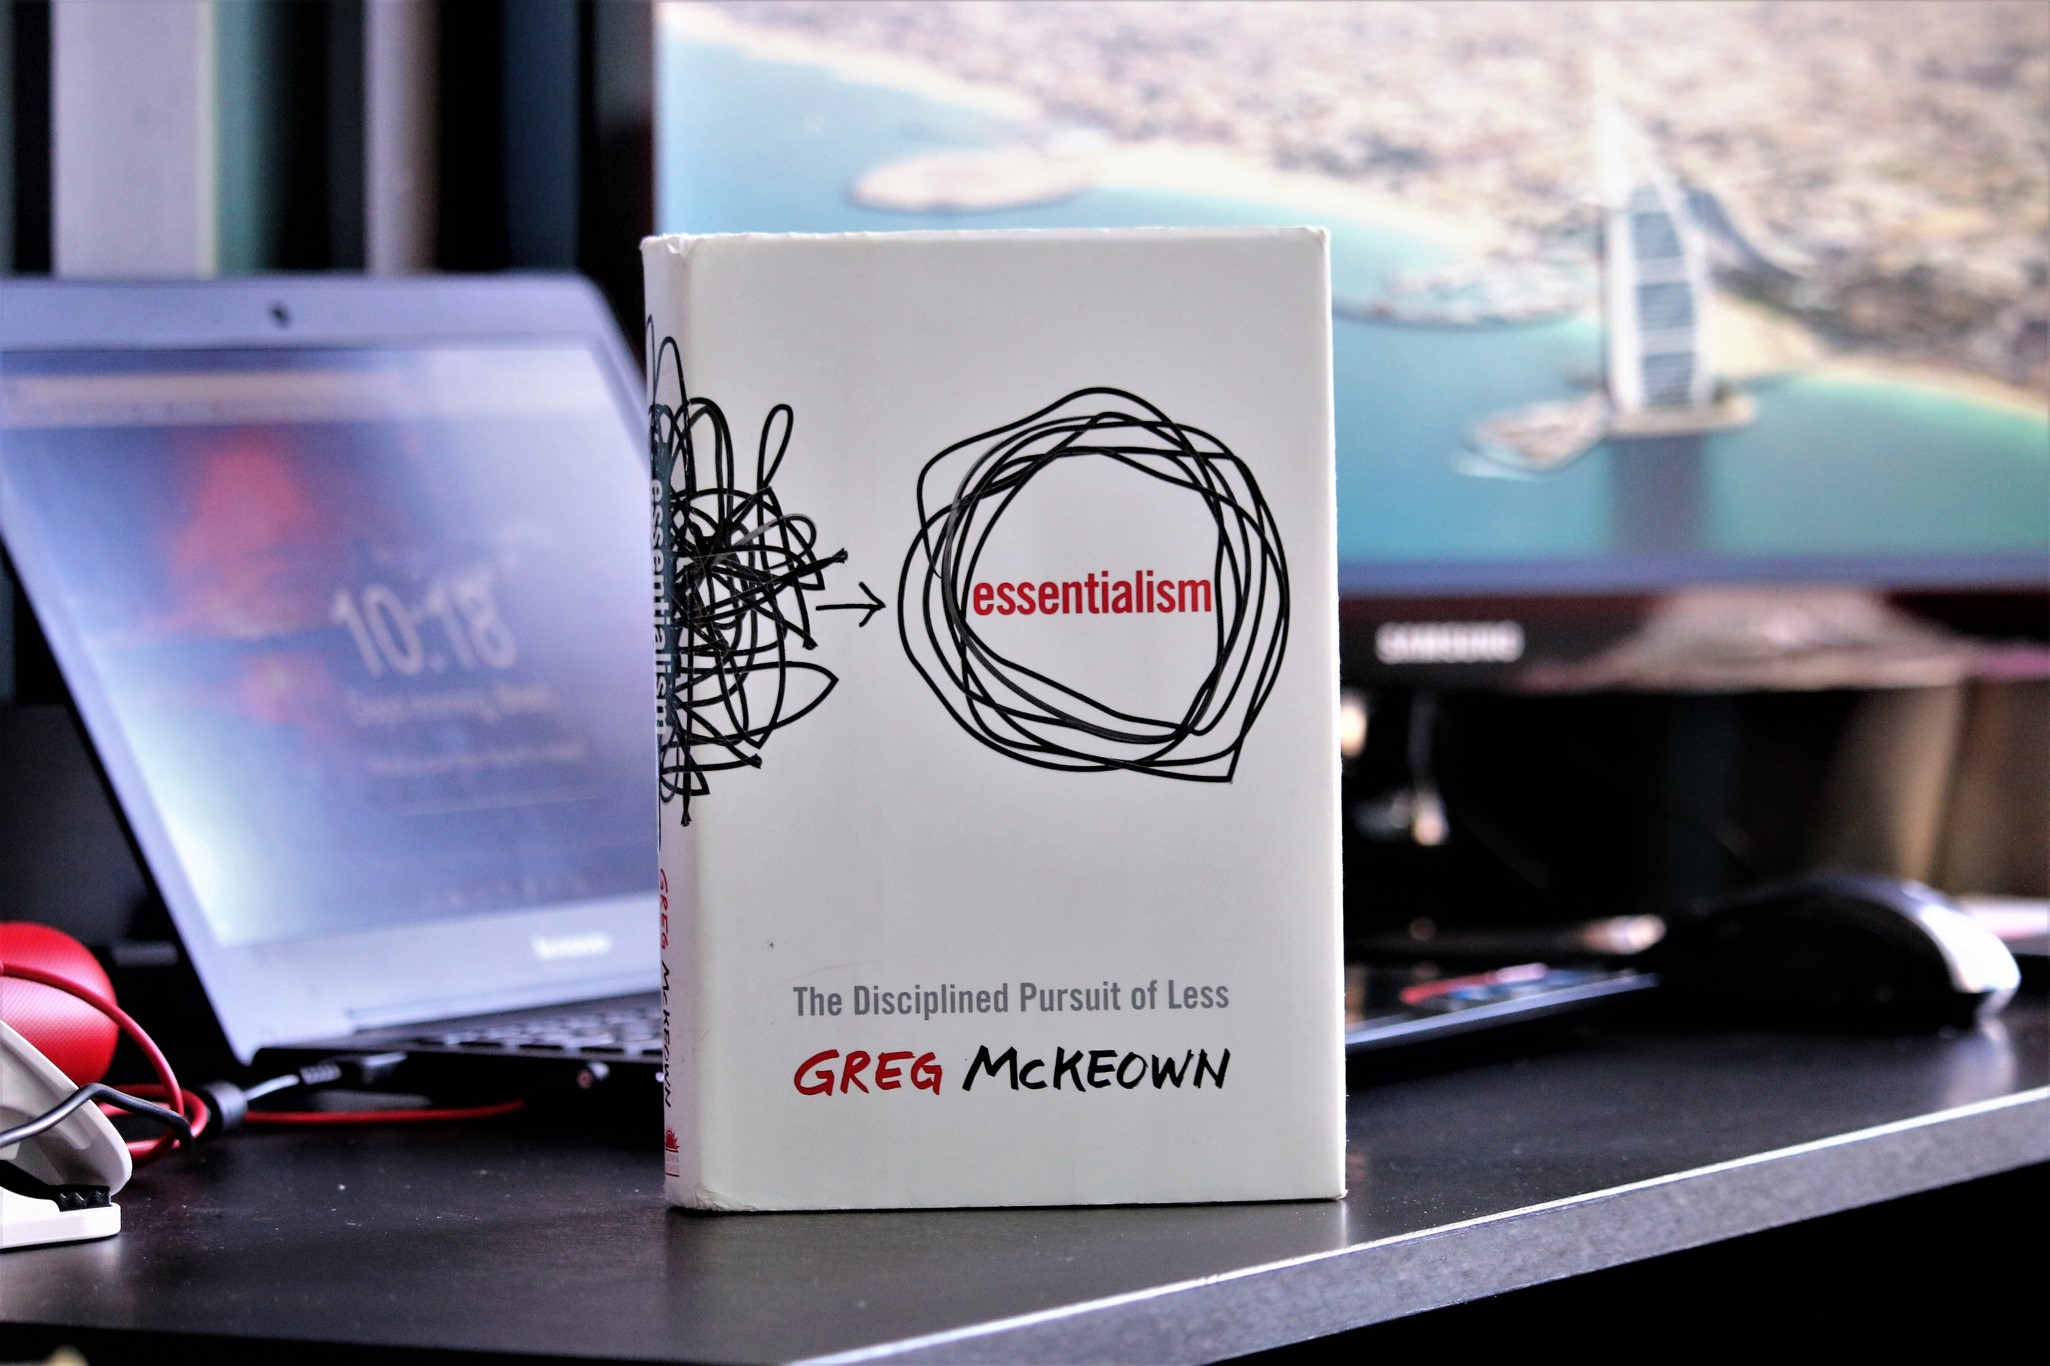 Greg McKeown's Essentialism on a desk in a home office